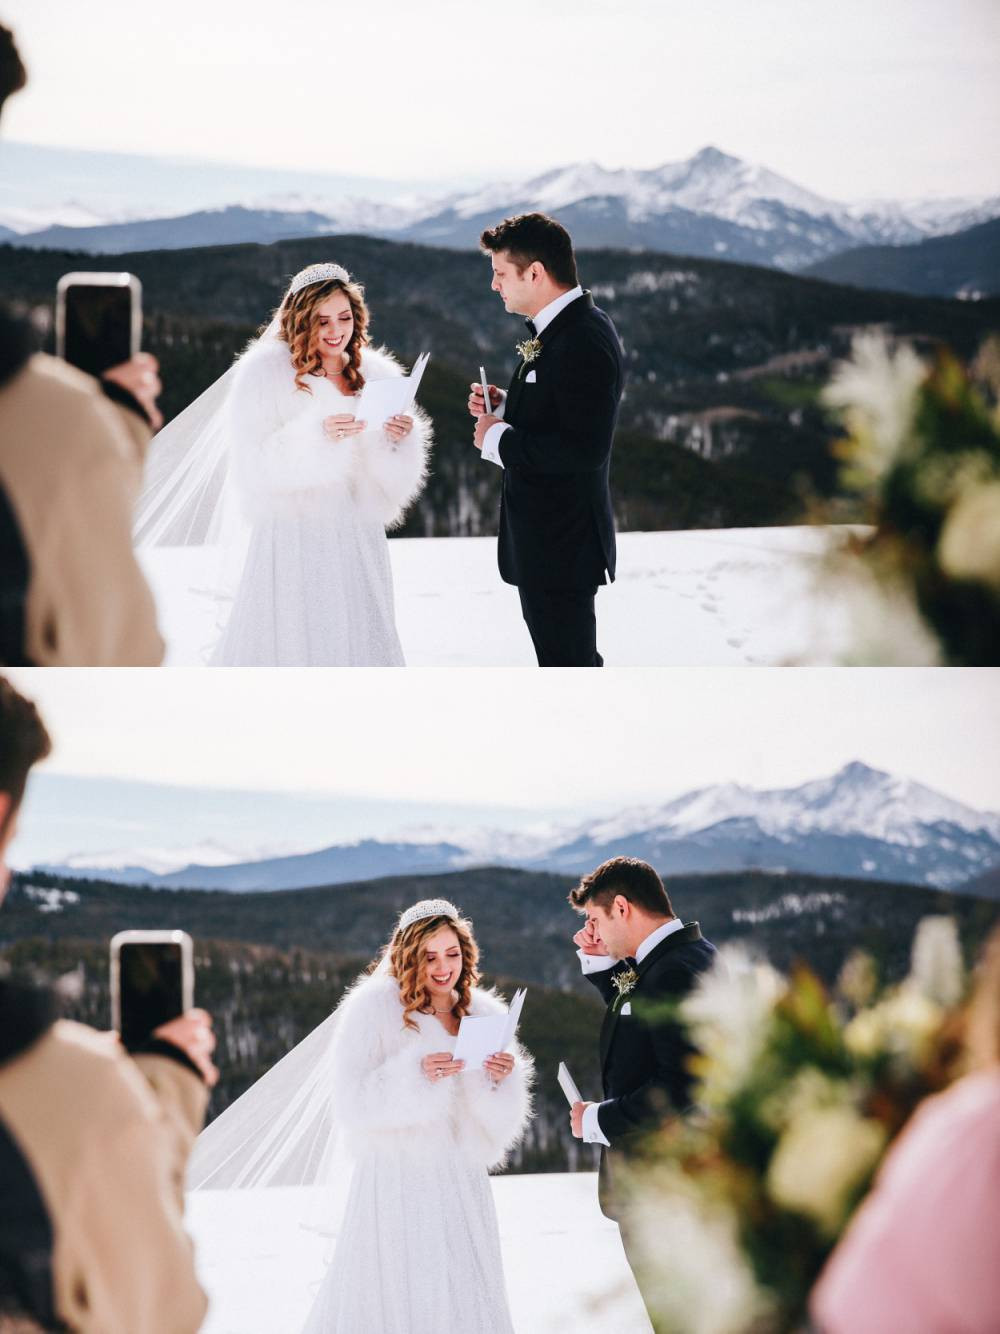 Getting Married in Vail